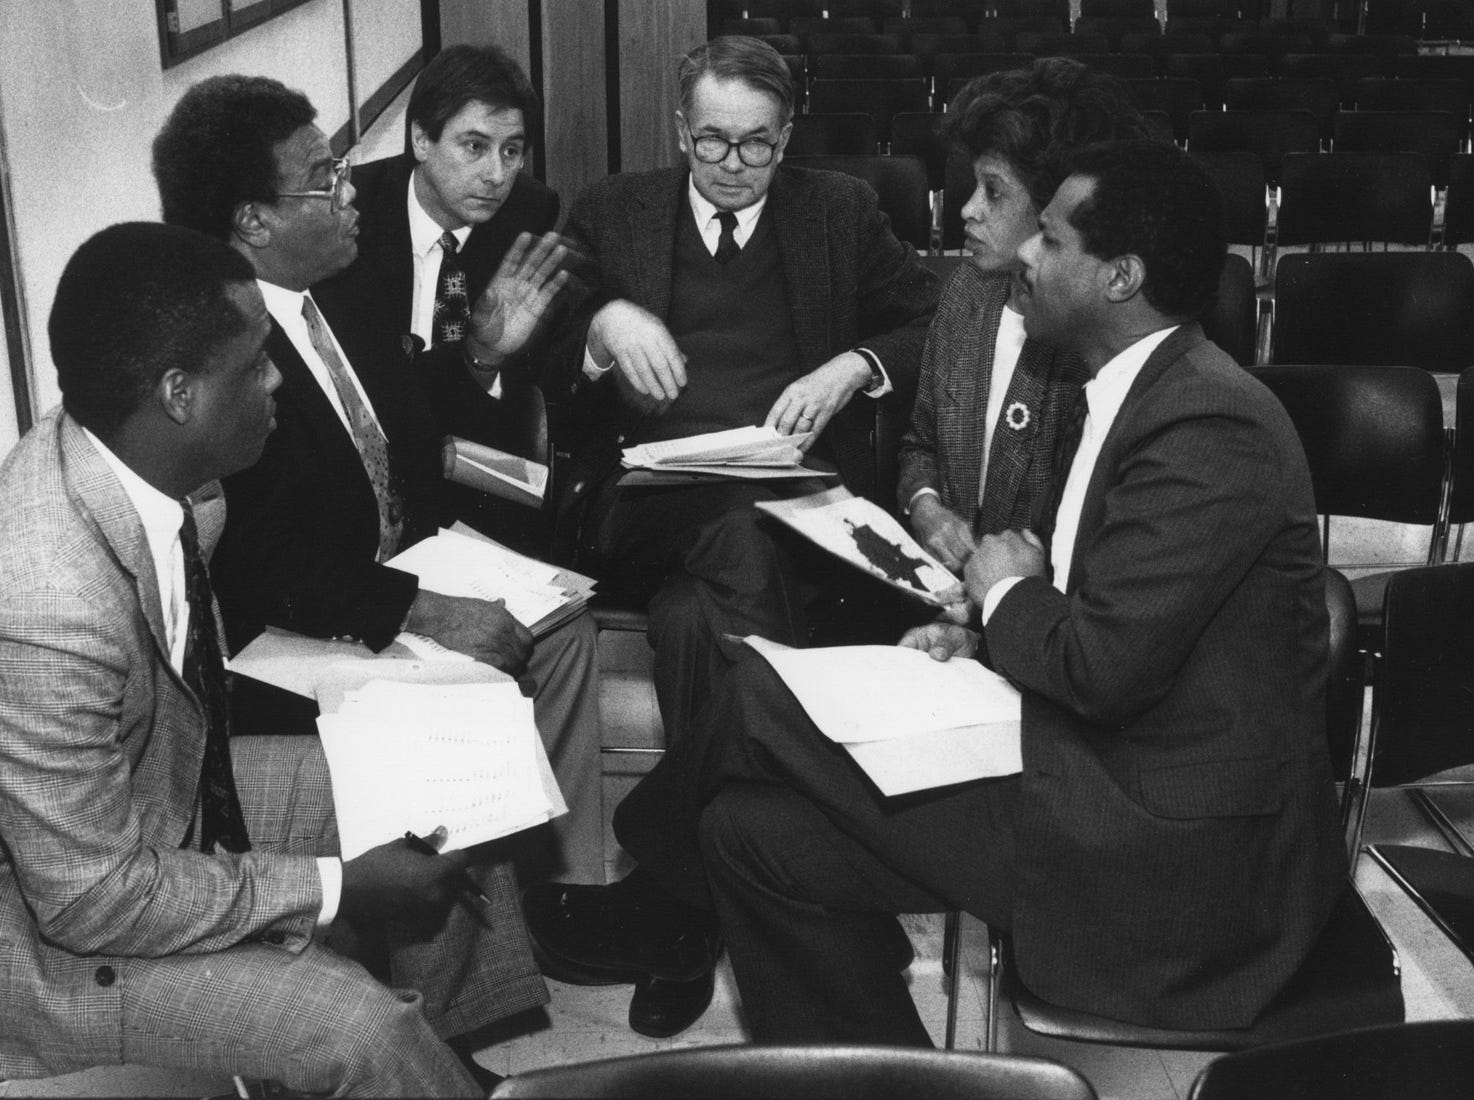 State rep. William Crawford (second from left) makes redistricting suggestions to Indianapolis Board of School Commissioners Dec. 17, 1991.  Left to right: David Girton, Crawford, Donald Payton, Richard Guthrie, Mary Busch and Fred Rice.